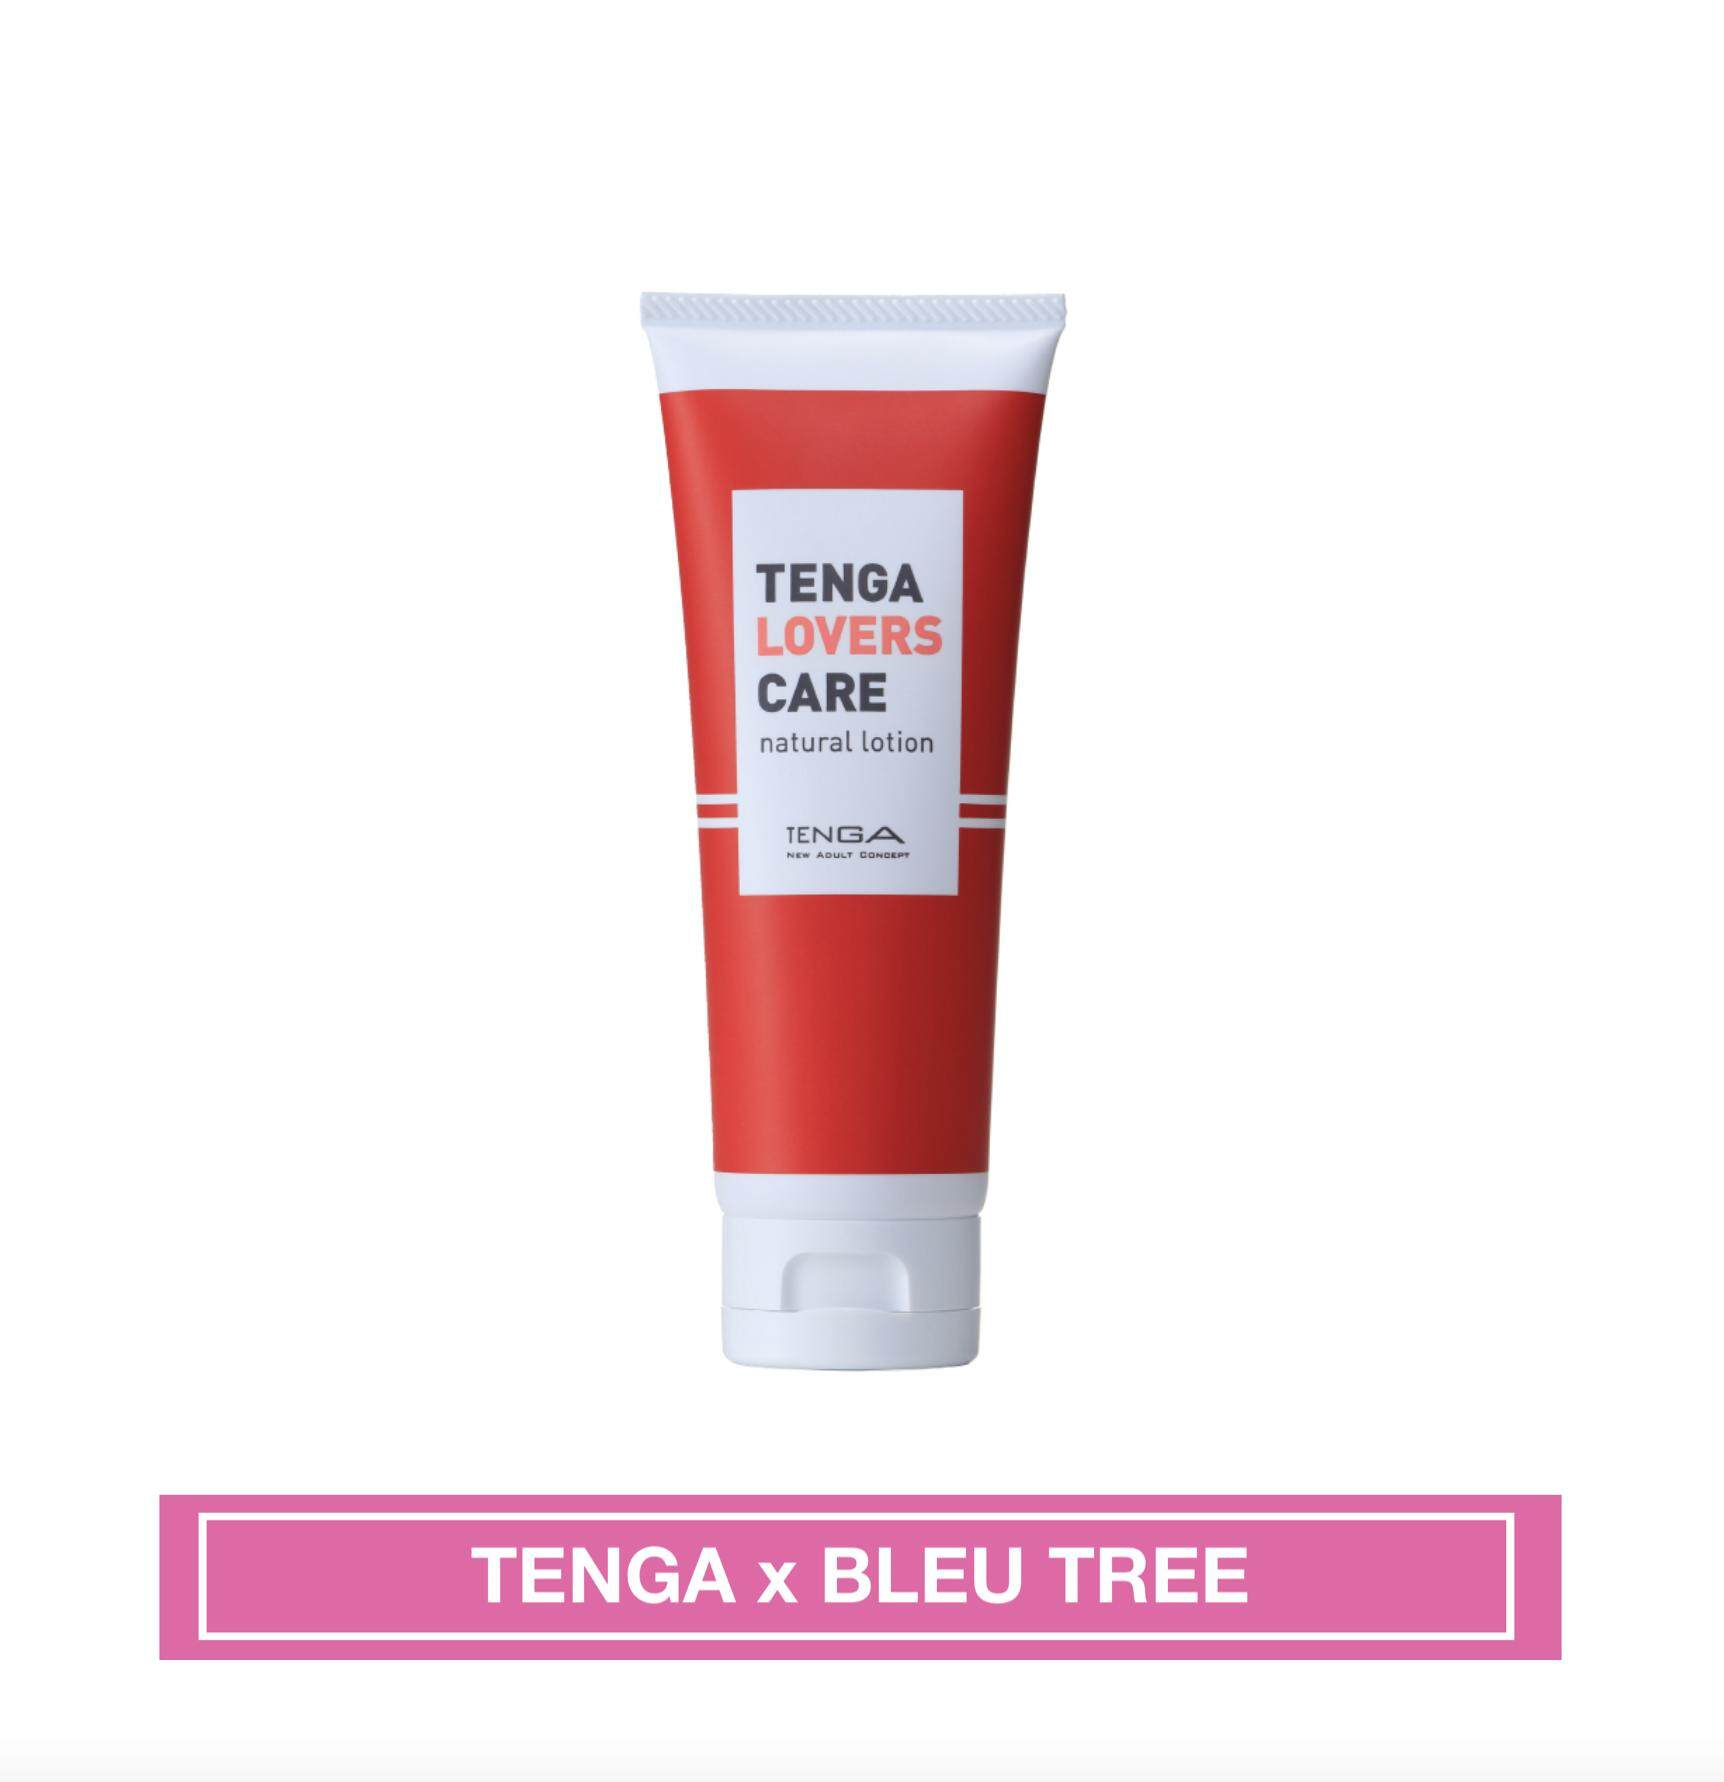 TENGA - Lovers Care Natural Lotion [120ml]